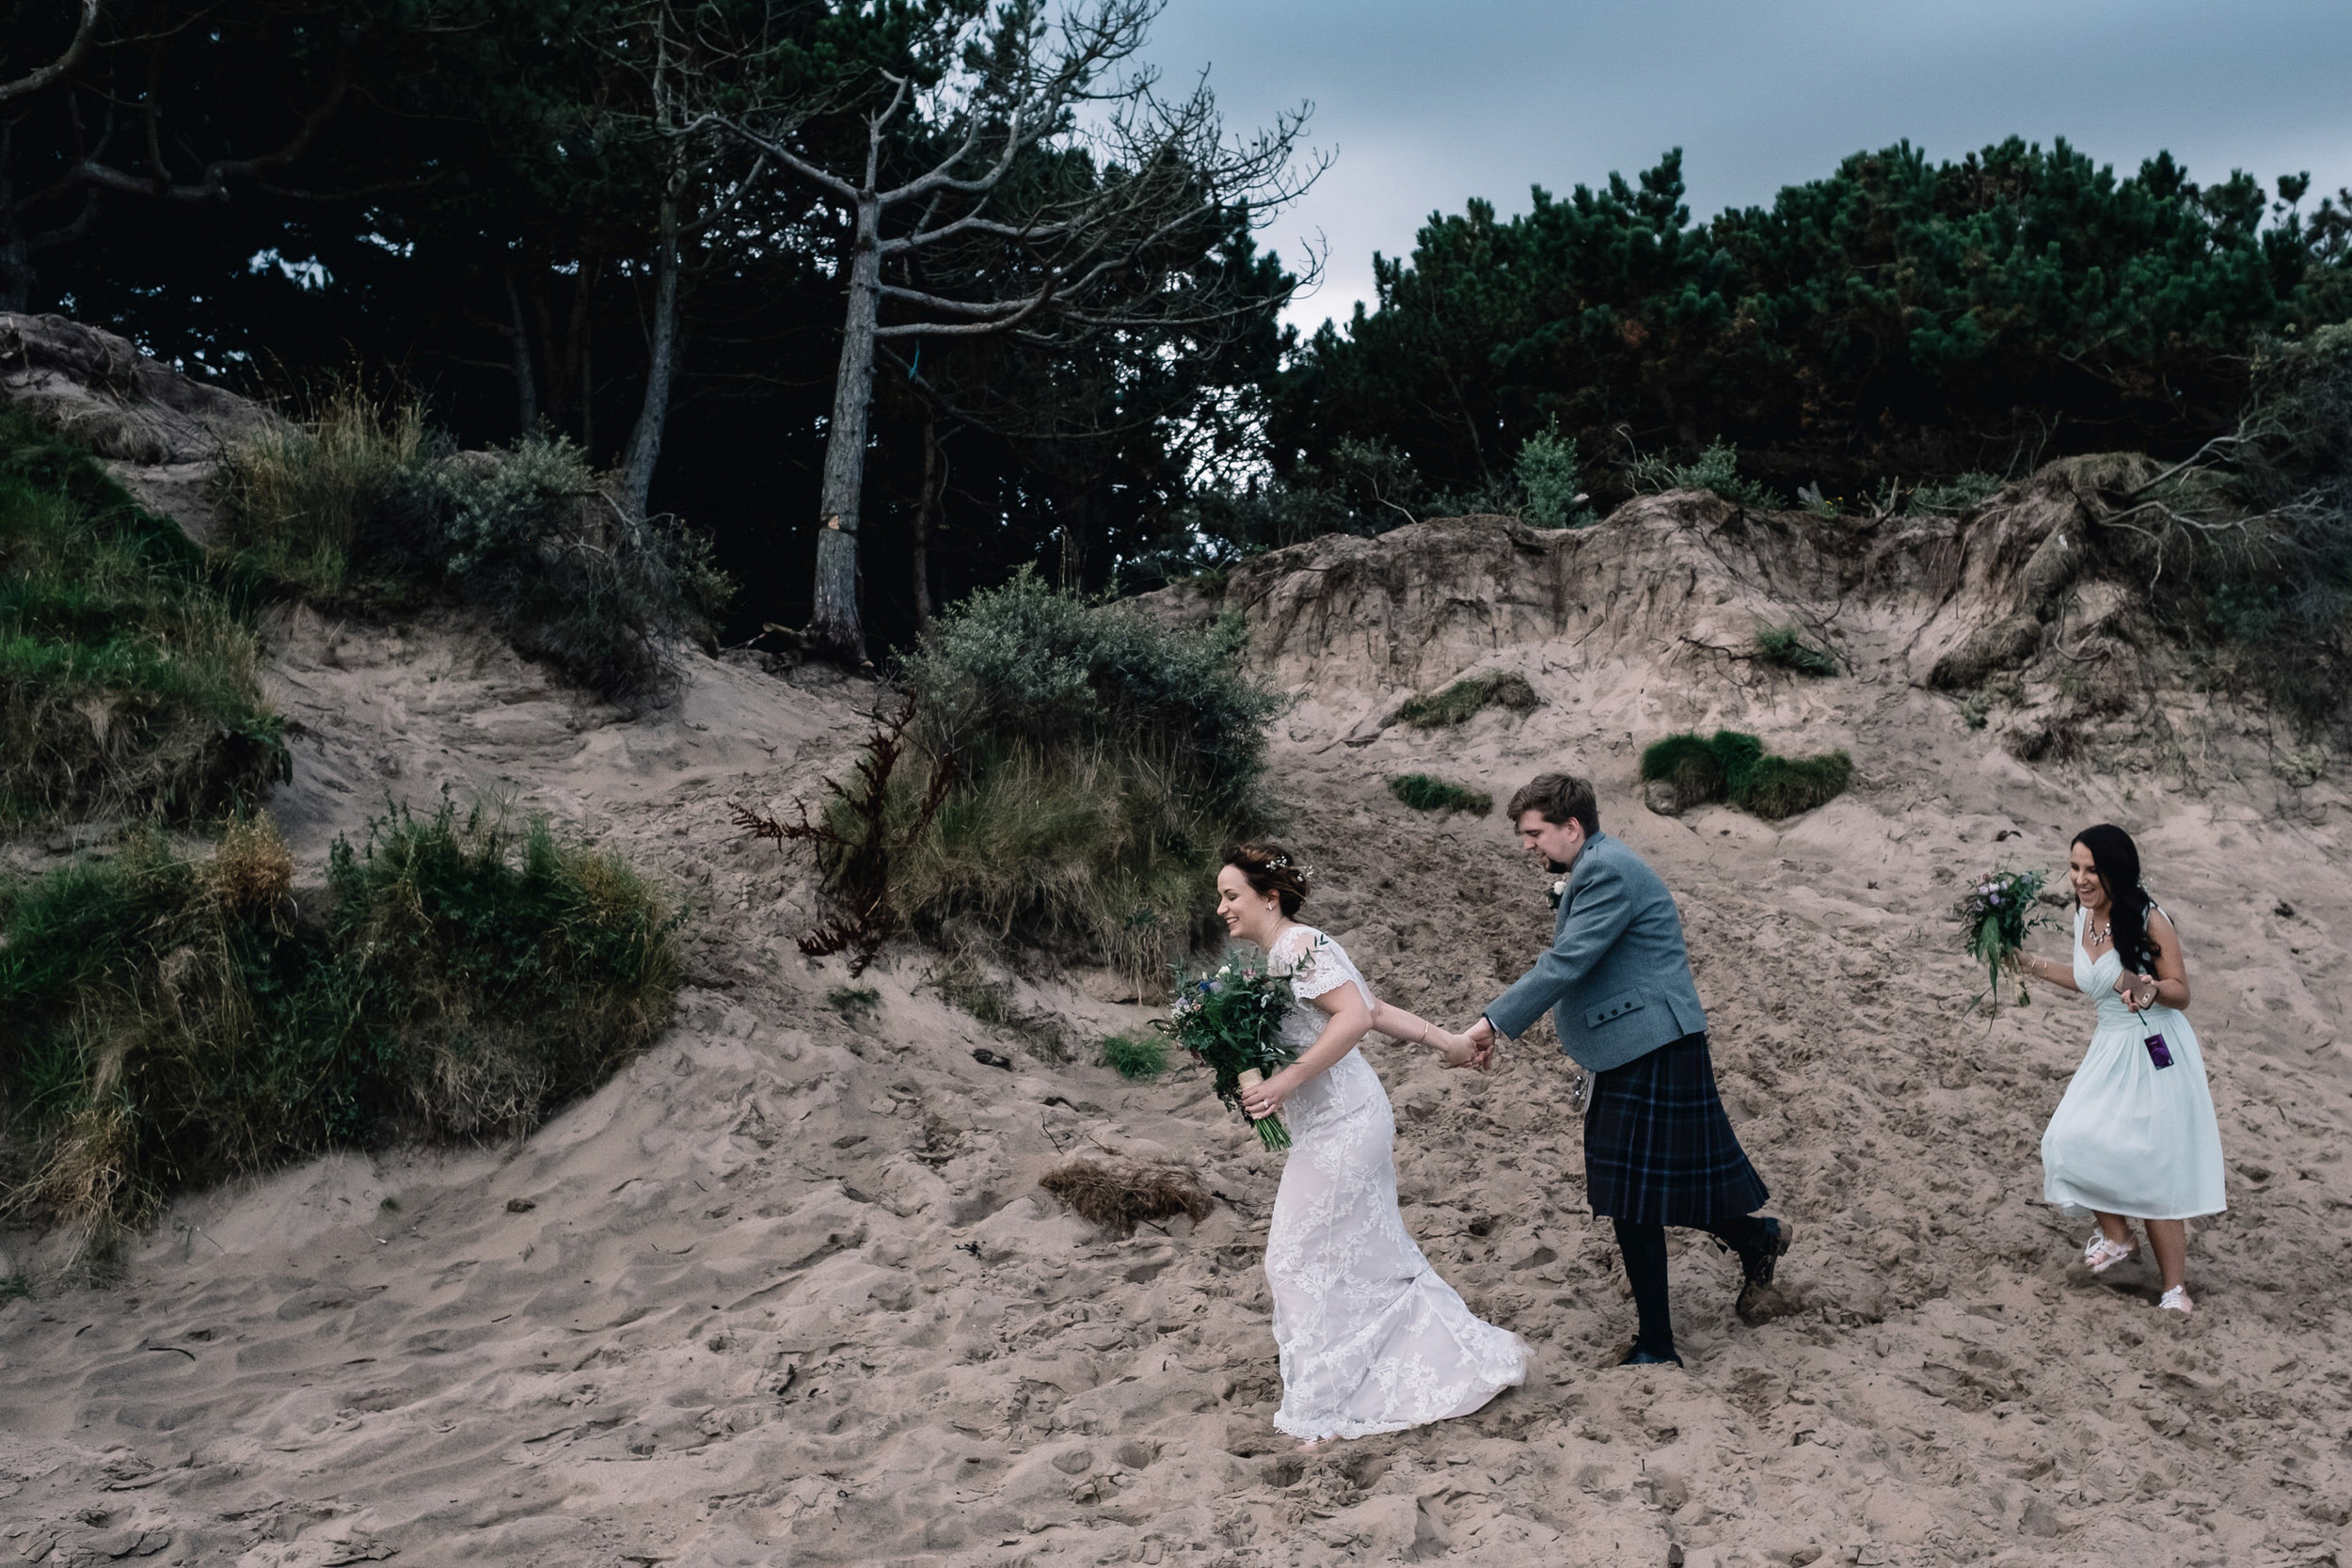 The bridal party make their way down to the beach for creative portraits